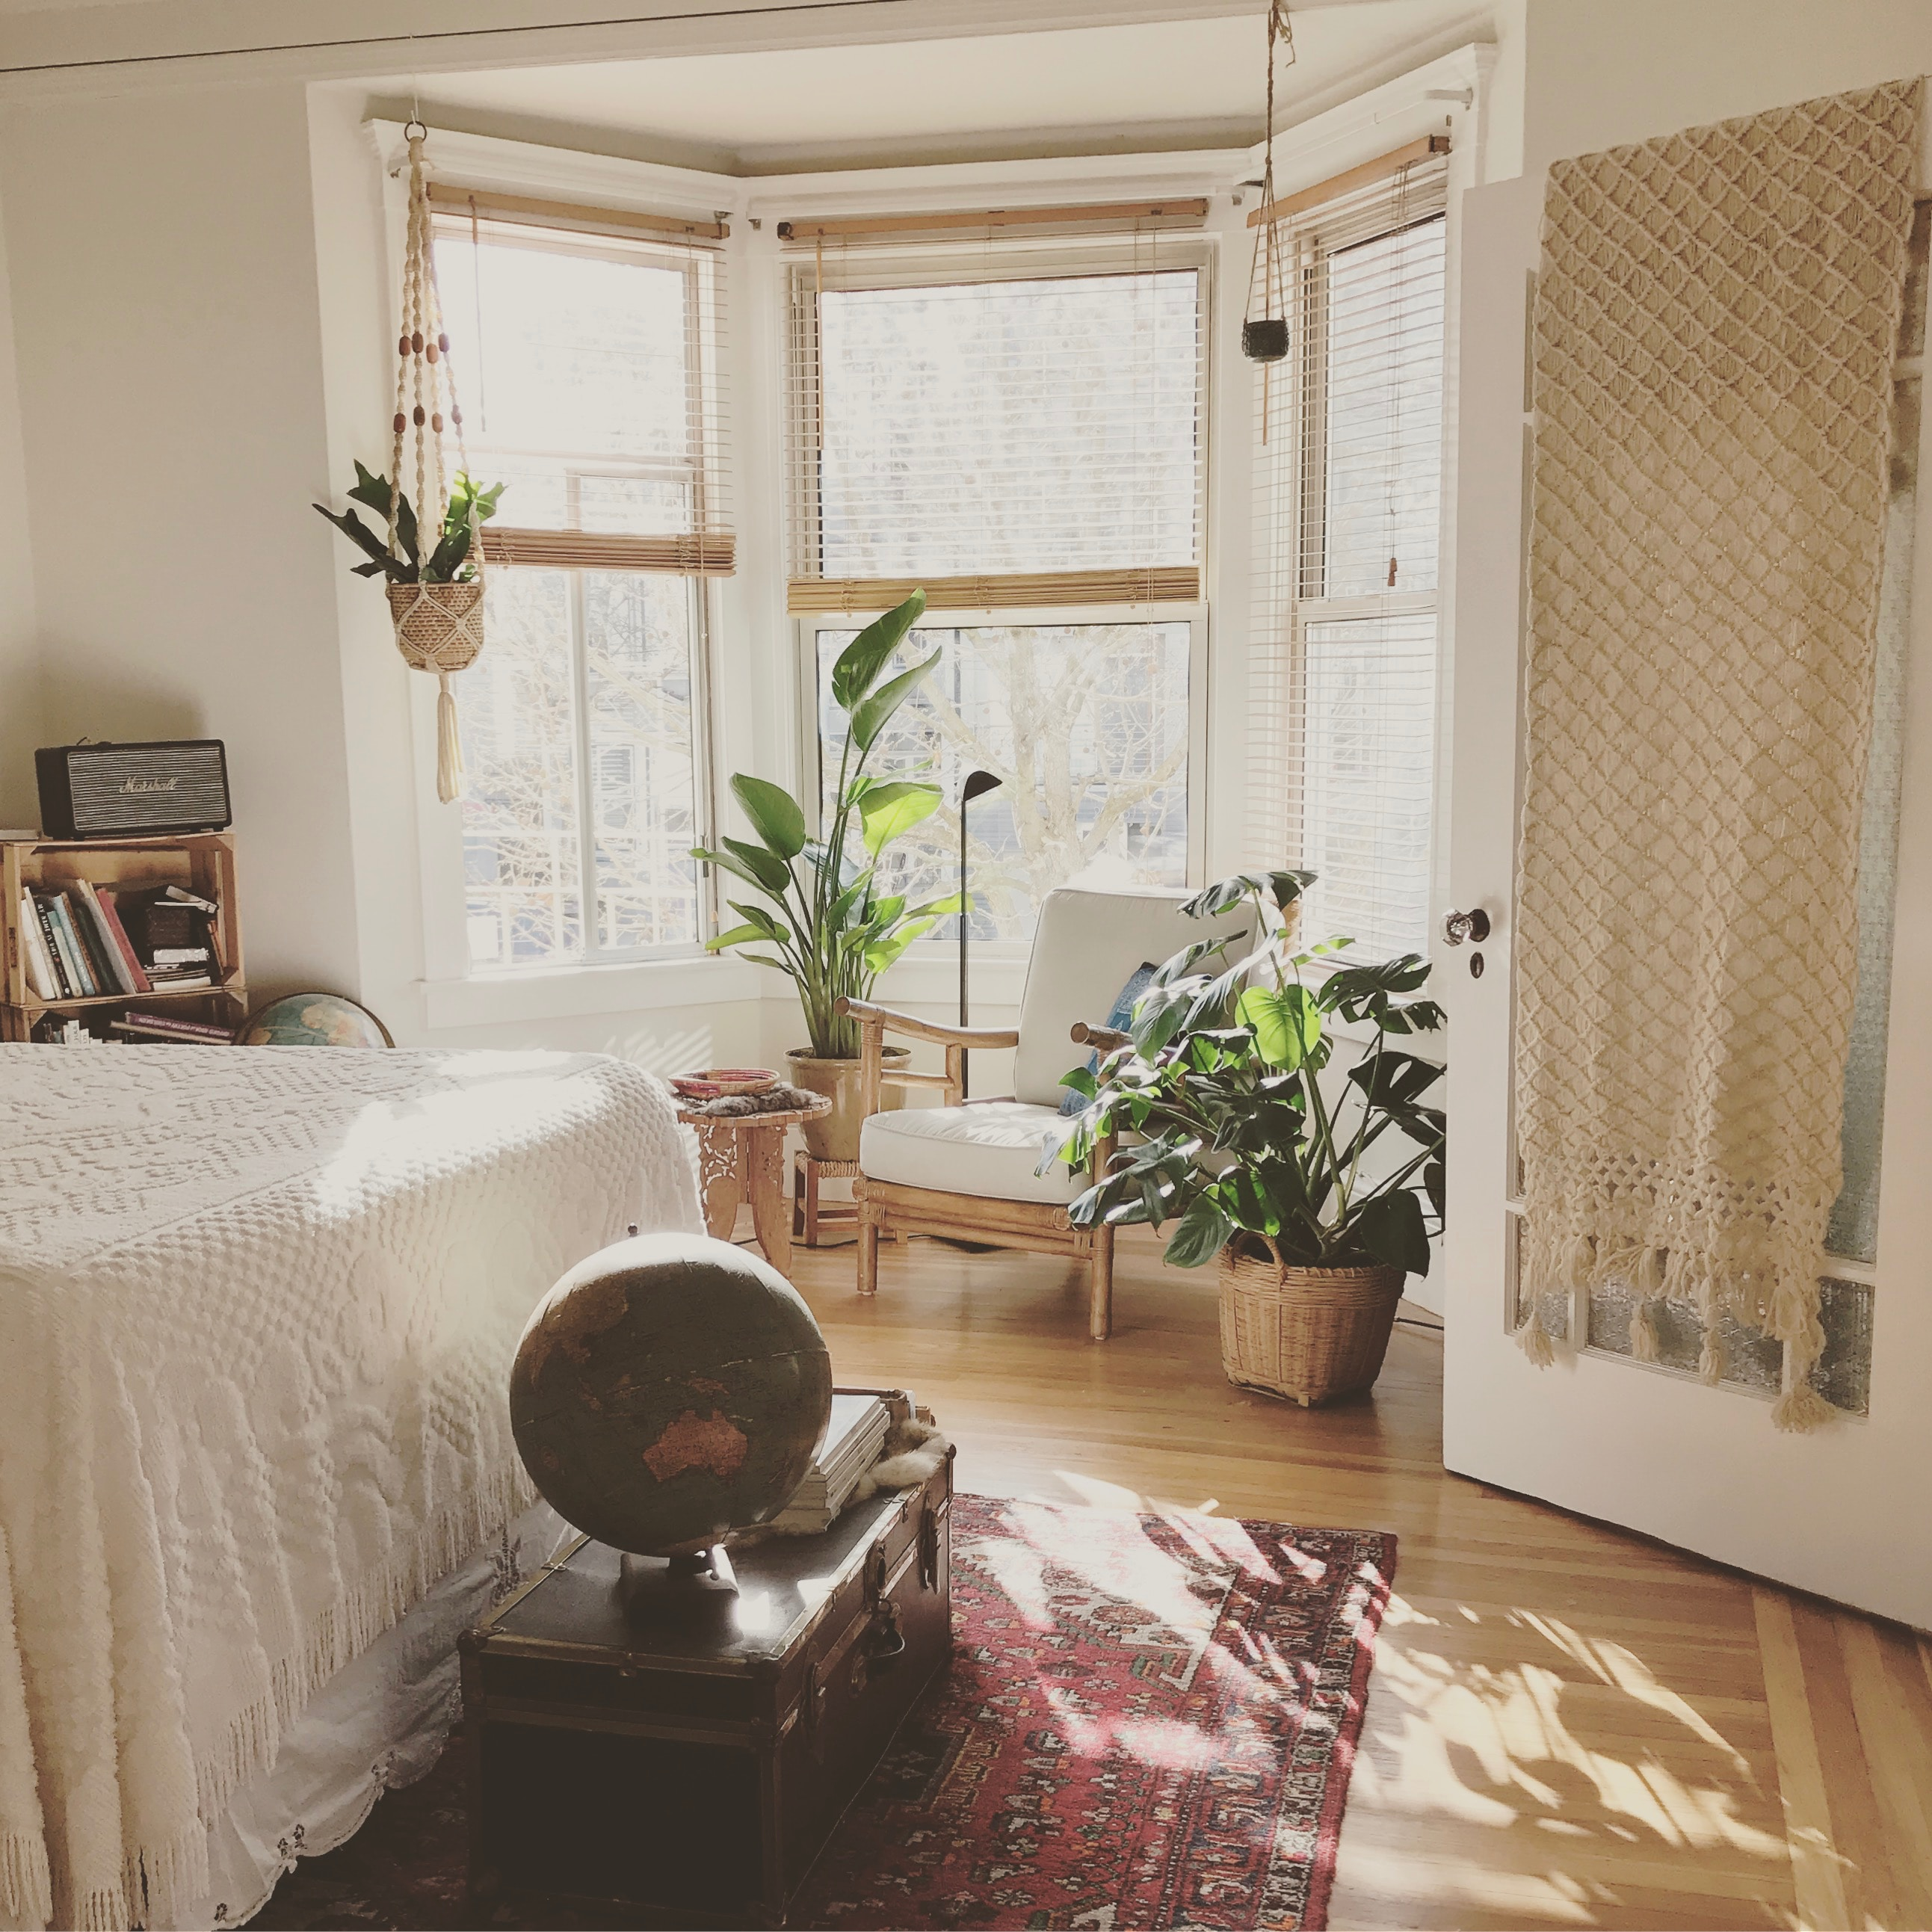 The 7 Best Small Space Design Ideas | Twelve Rivers Realty